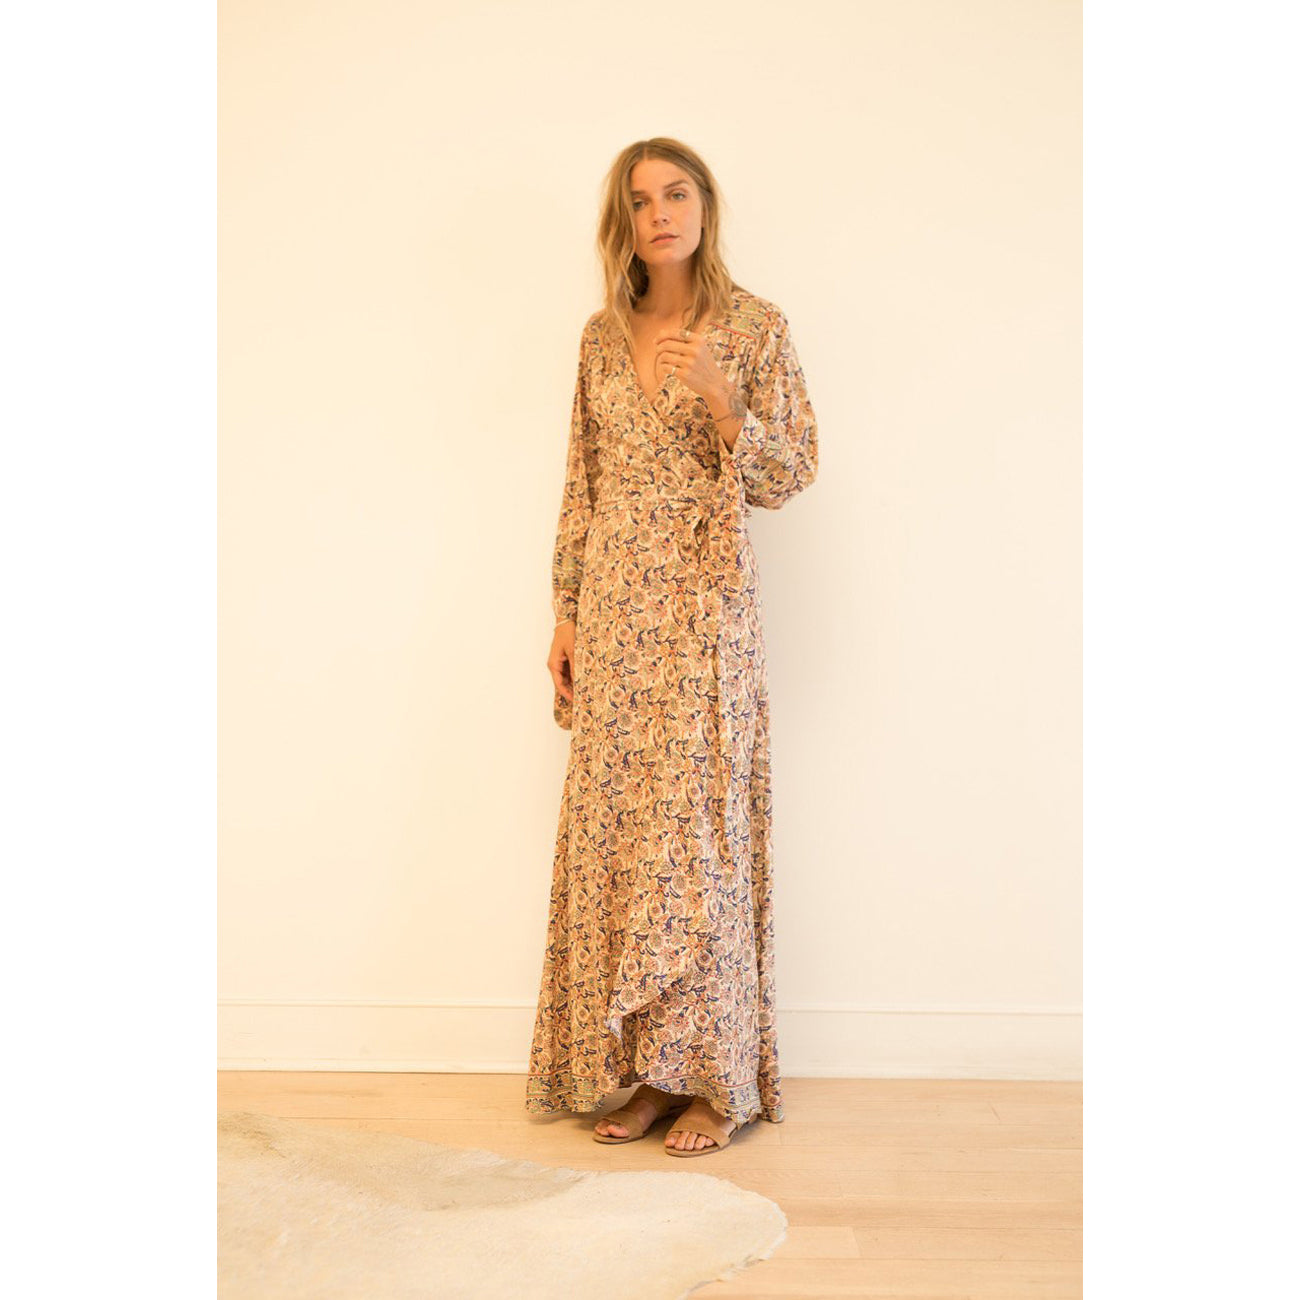 Natalie Martin Collection Danika Long Sleeve Dress in Goa Print